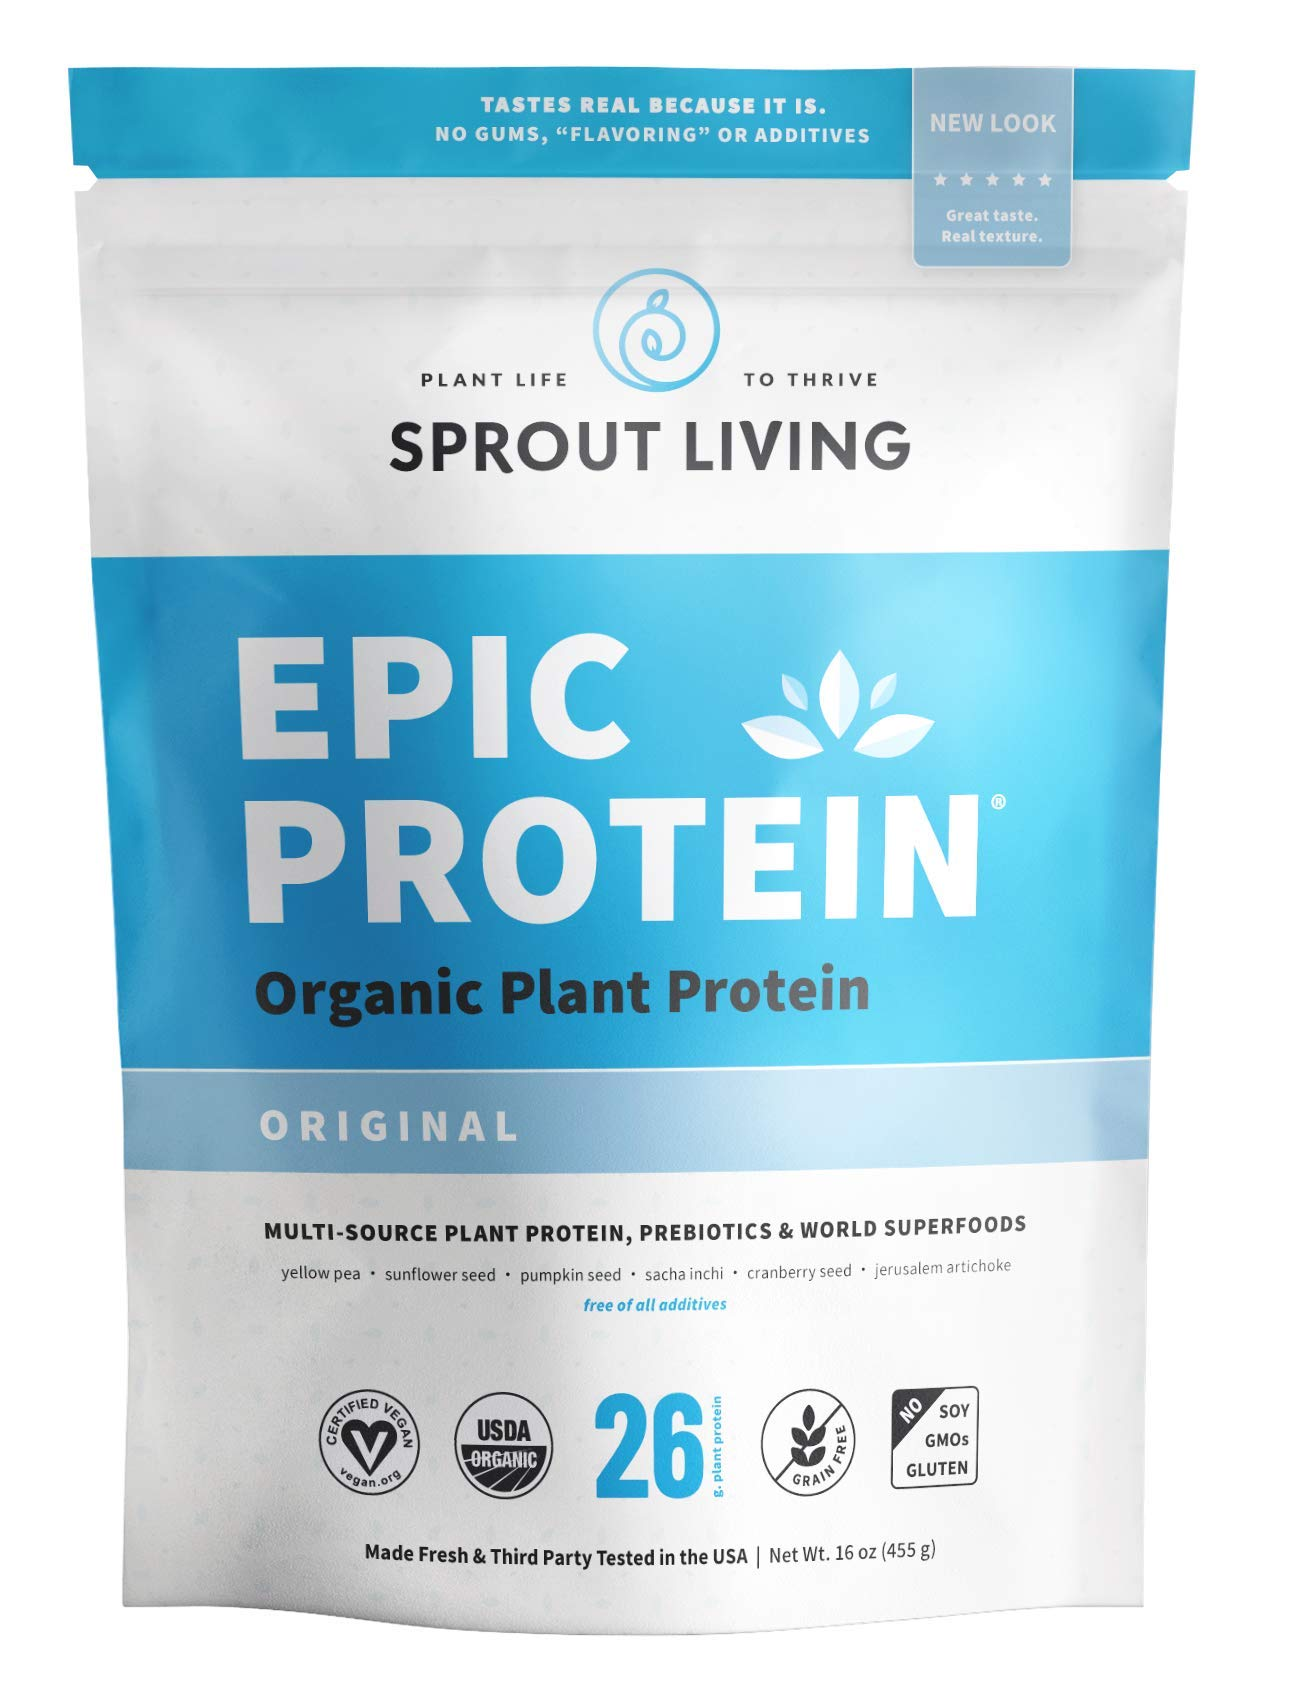 Sprout Living Epic Protein Powder, Original Flavor, Organic Plant Protein, No Additives, Gluten Free, 26 Grams Clean Vegan Protein (1 Pound,13 Servings) by Sprout Living